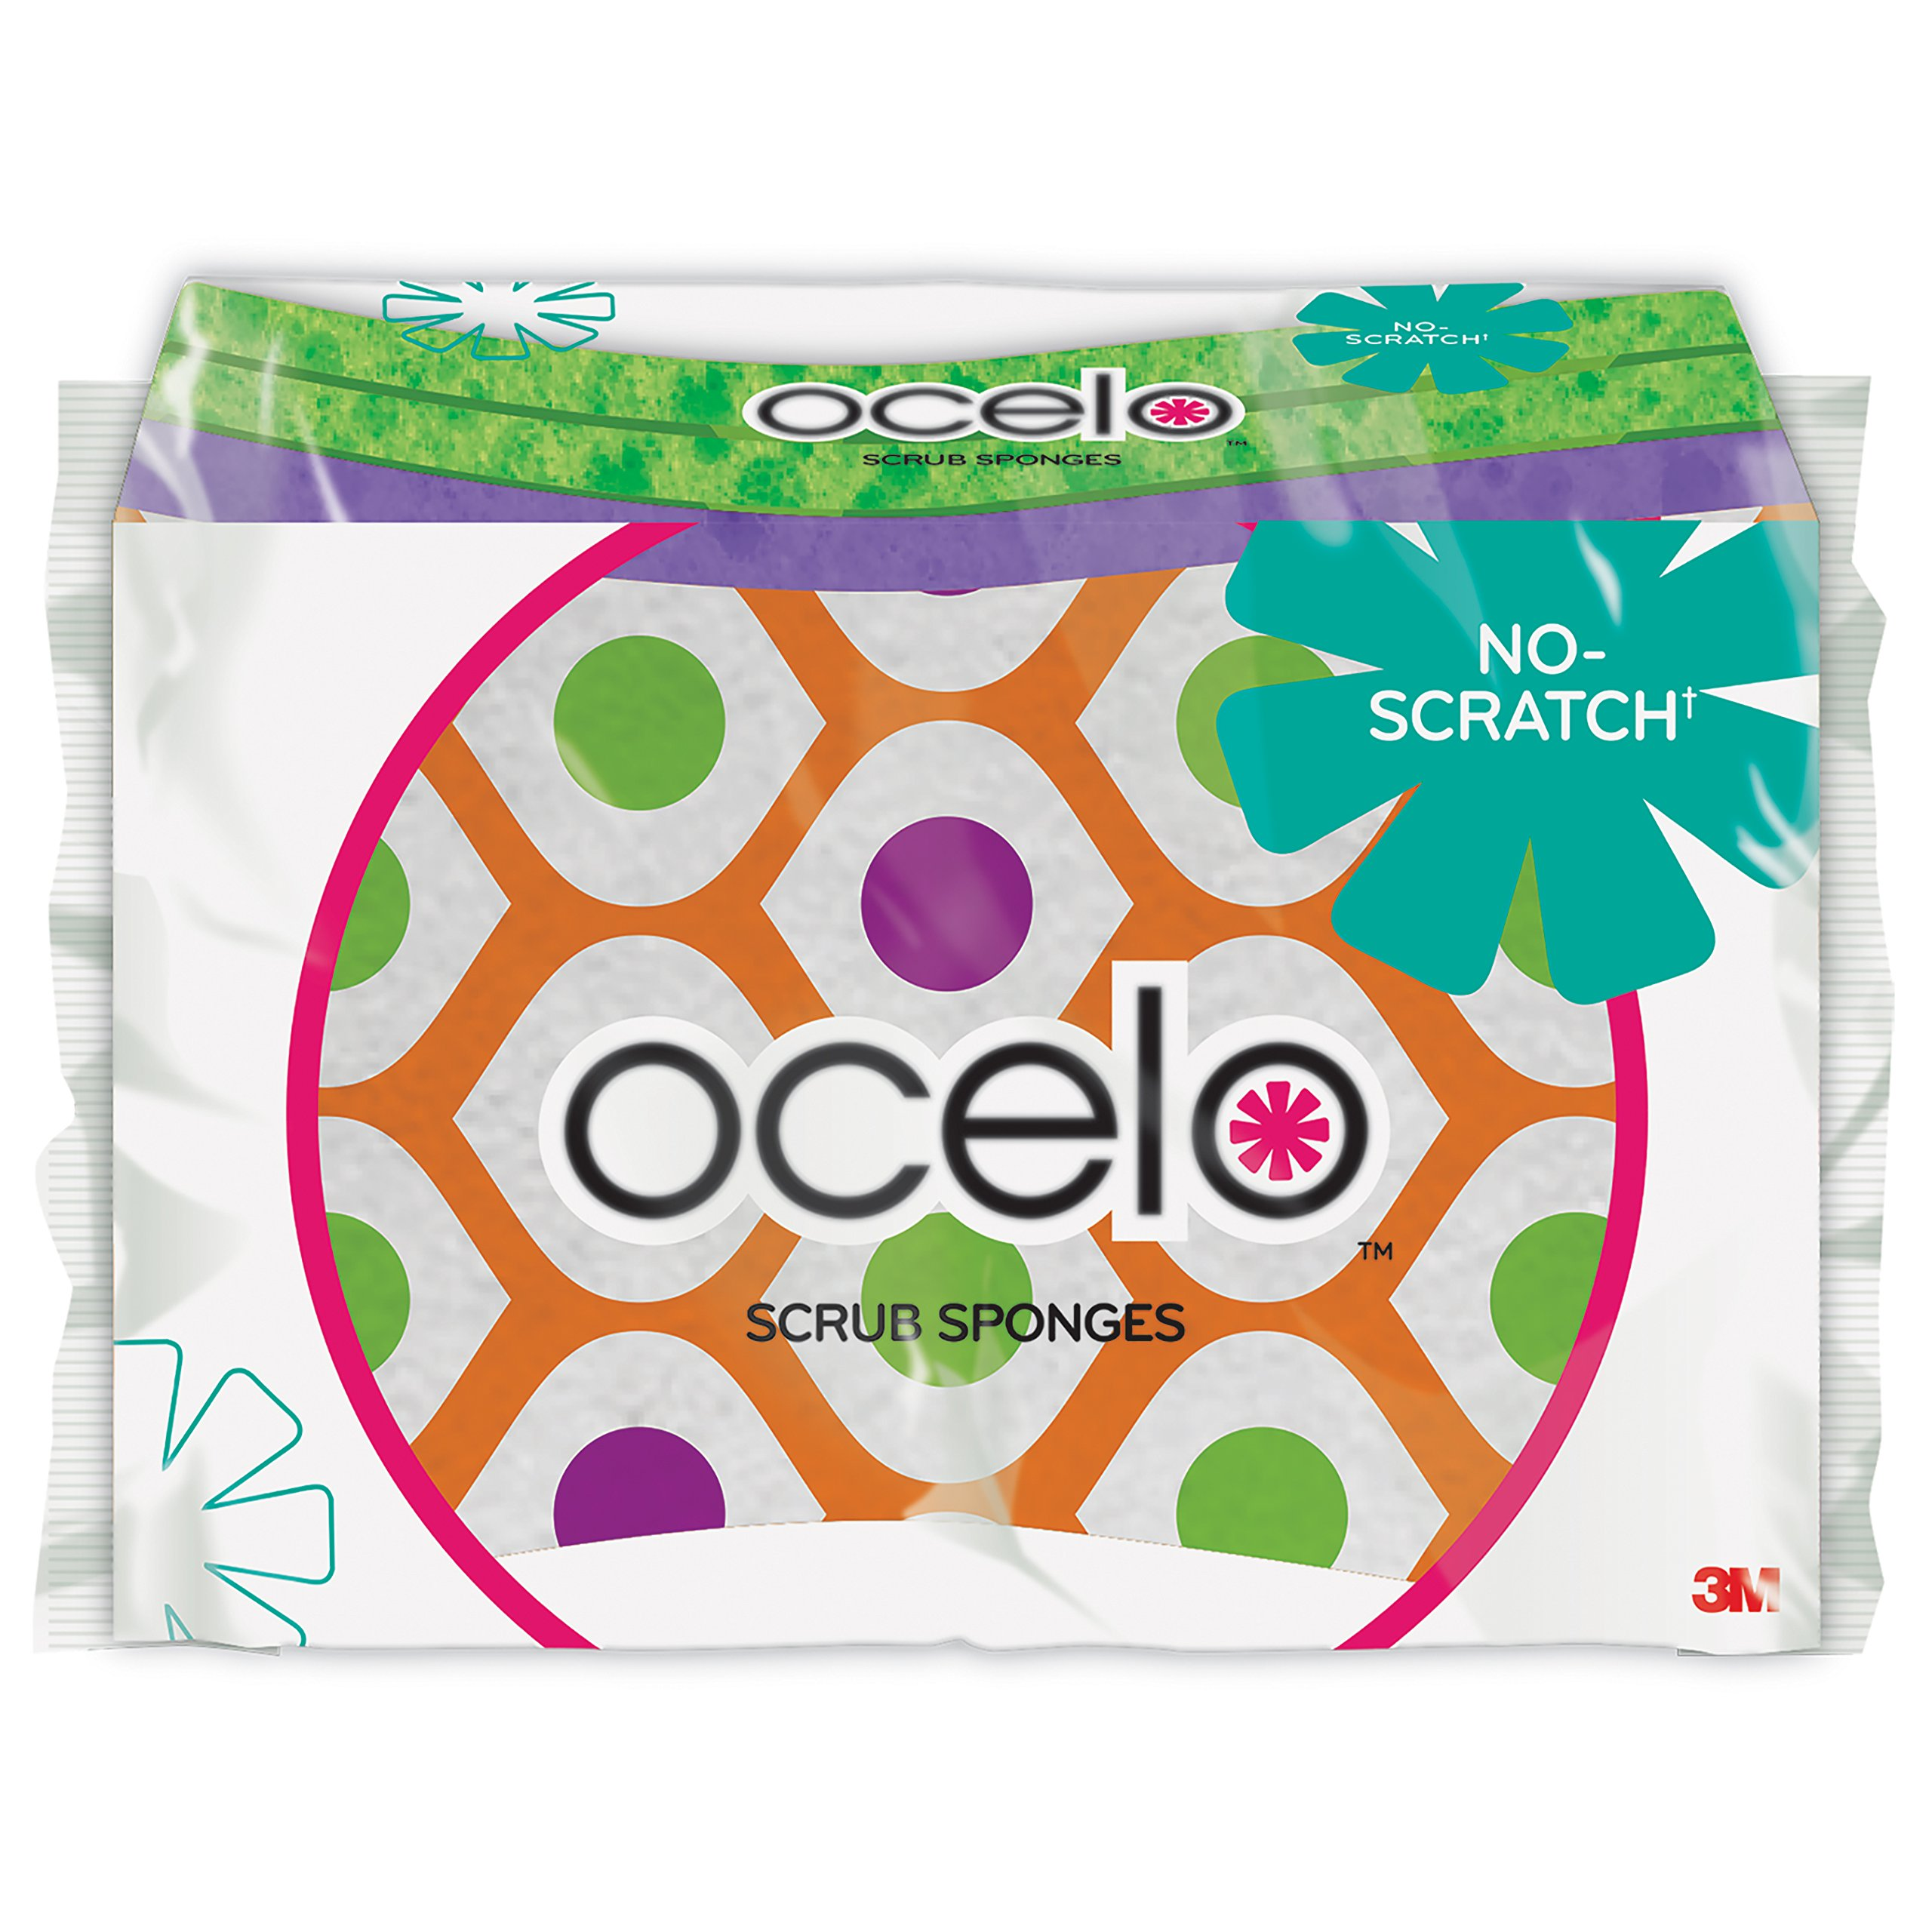 ocelo Light Duty No-Scratch Scrub Sponge,  colors and patterns may vary, 3 Sponges/Pk, 4-Packs (12 Sponges Total)